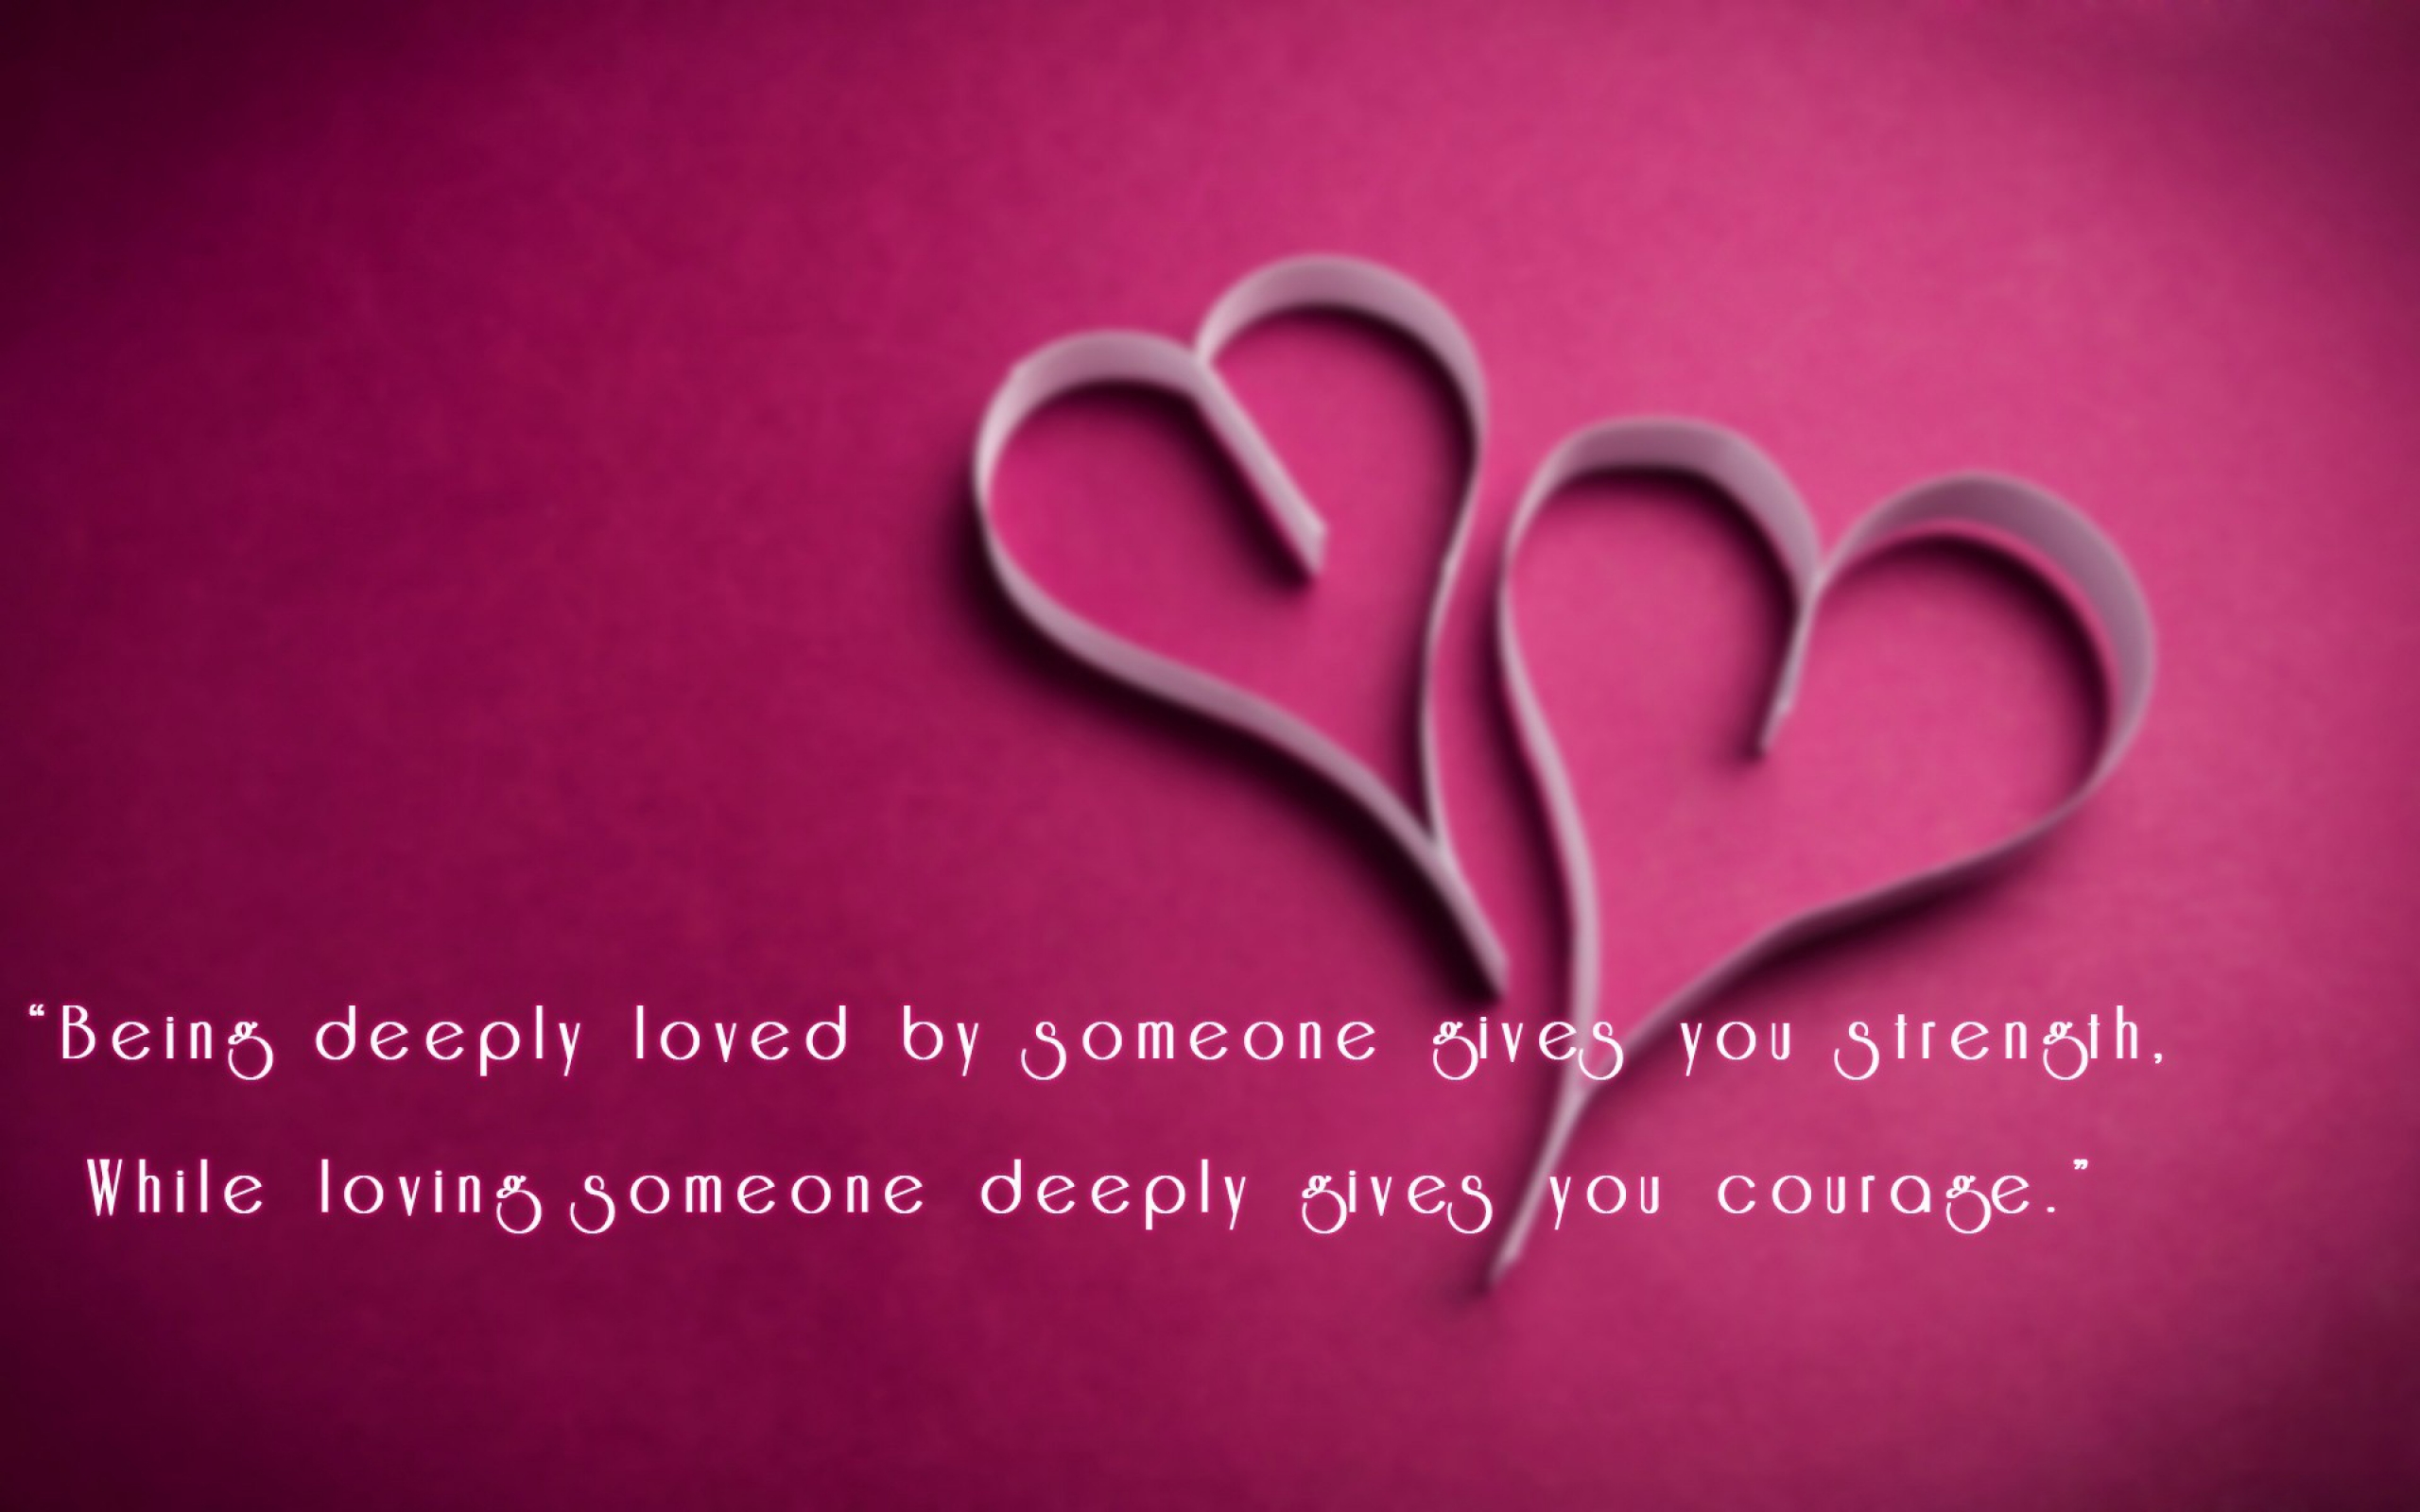 beautiful love quotes hd wallpapers pc cool love quote desktop wallpaper